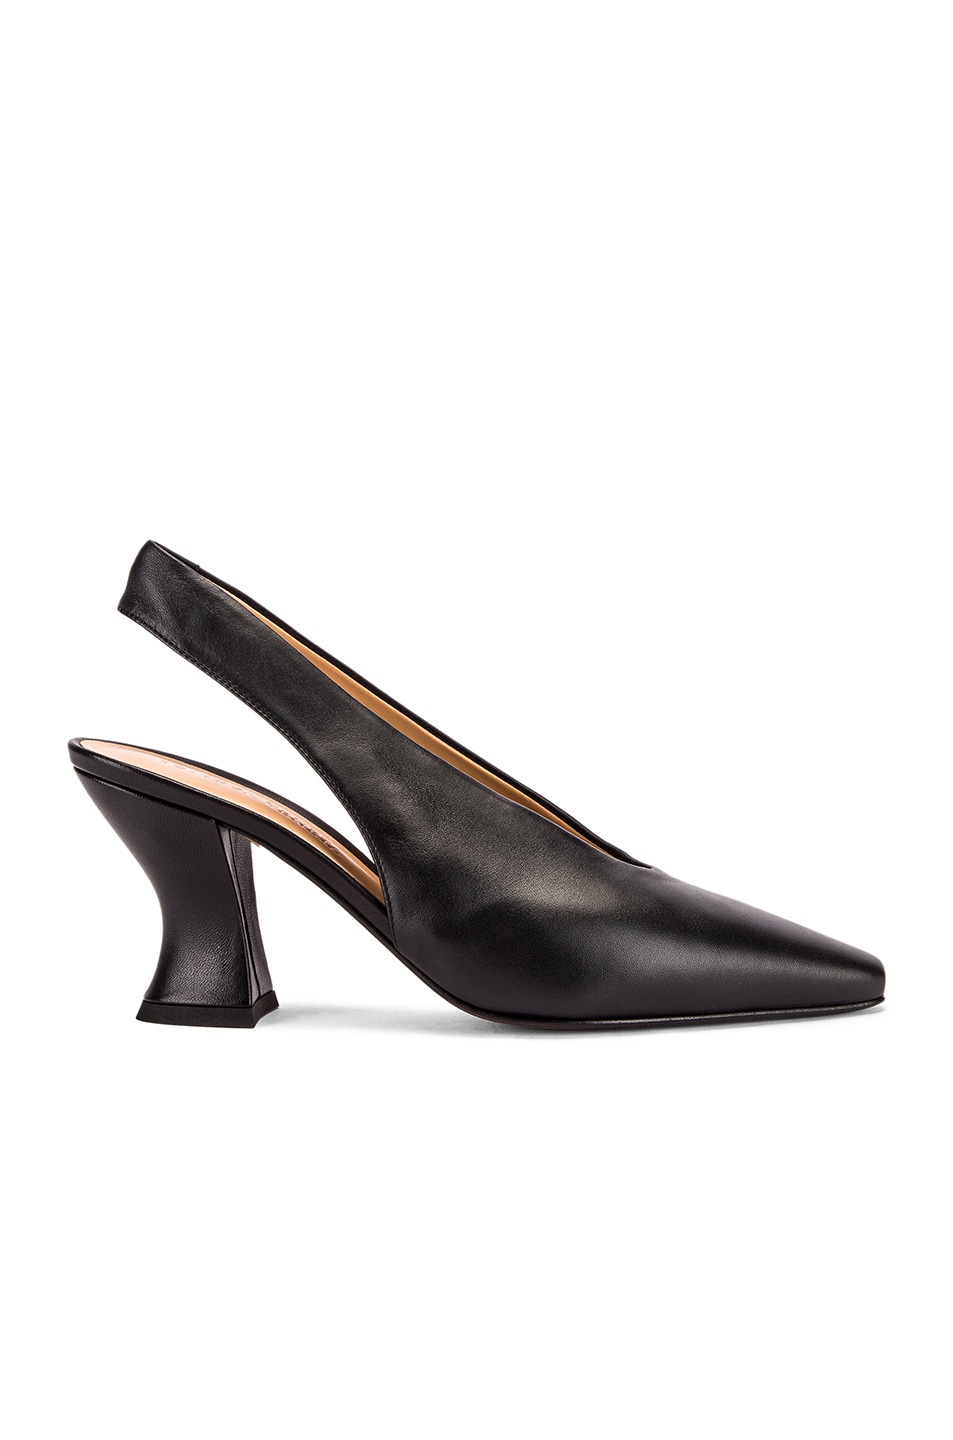 Image 1 of Bottega Veneta Almond Slingback Kitten Heels in Black